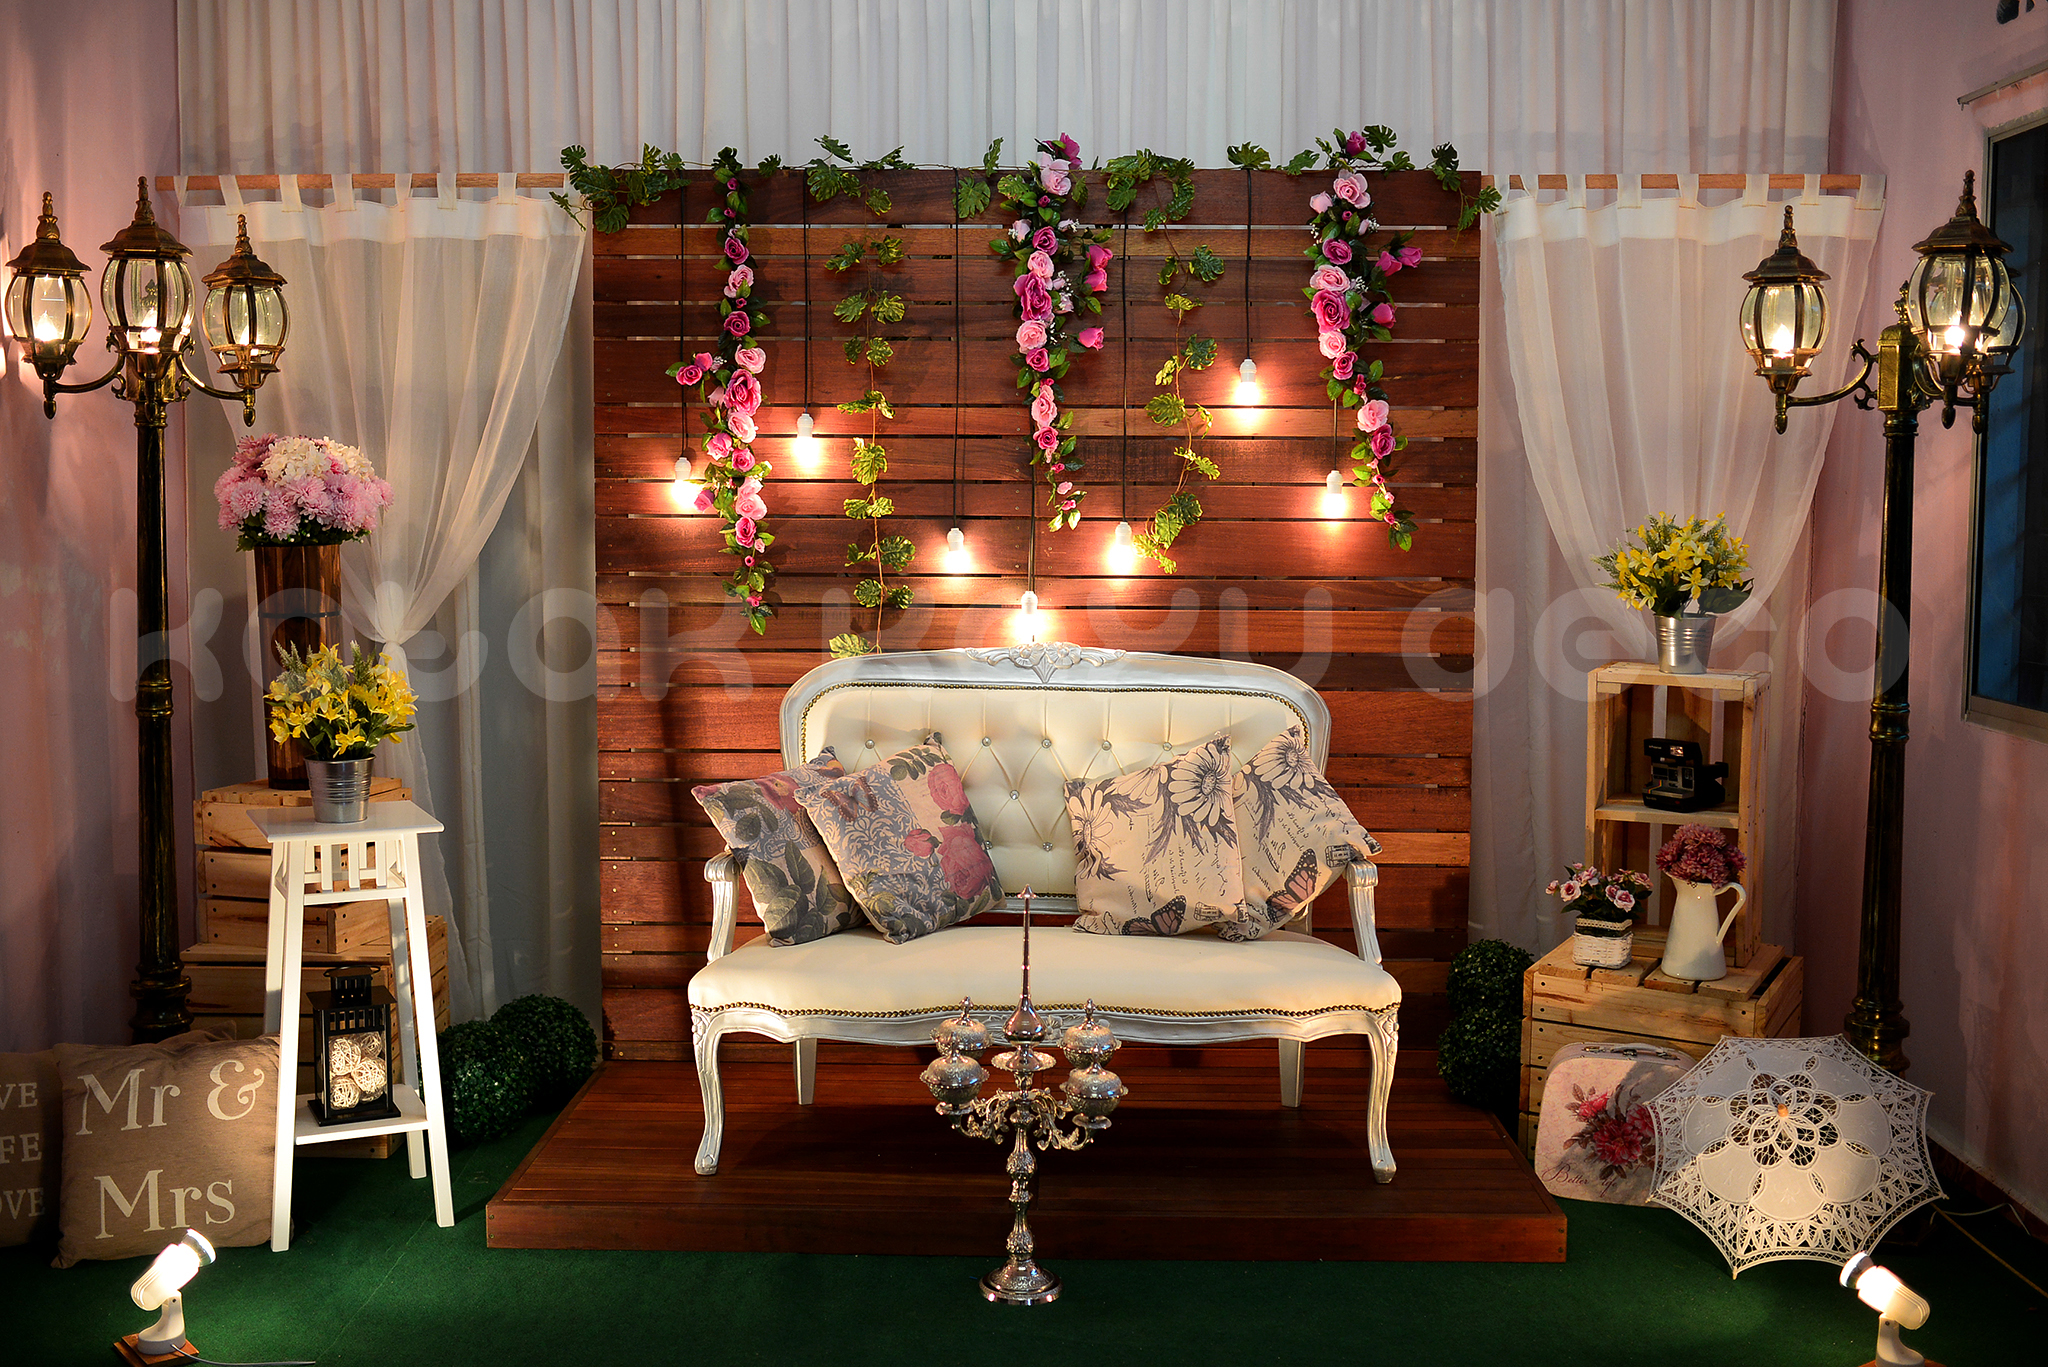 Wallpaper Untuk Kayu New Design For Wedding's Pelamin | Rustic & Vintage Theme